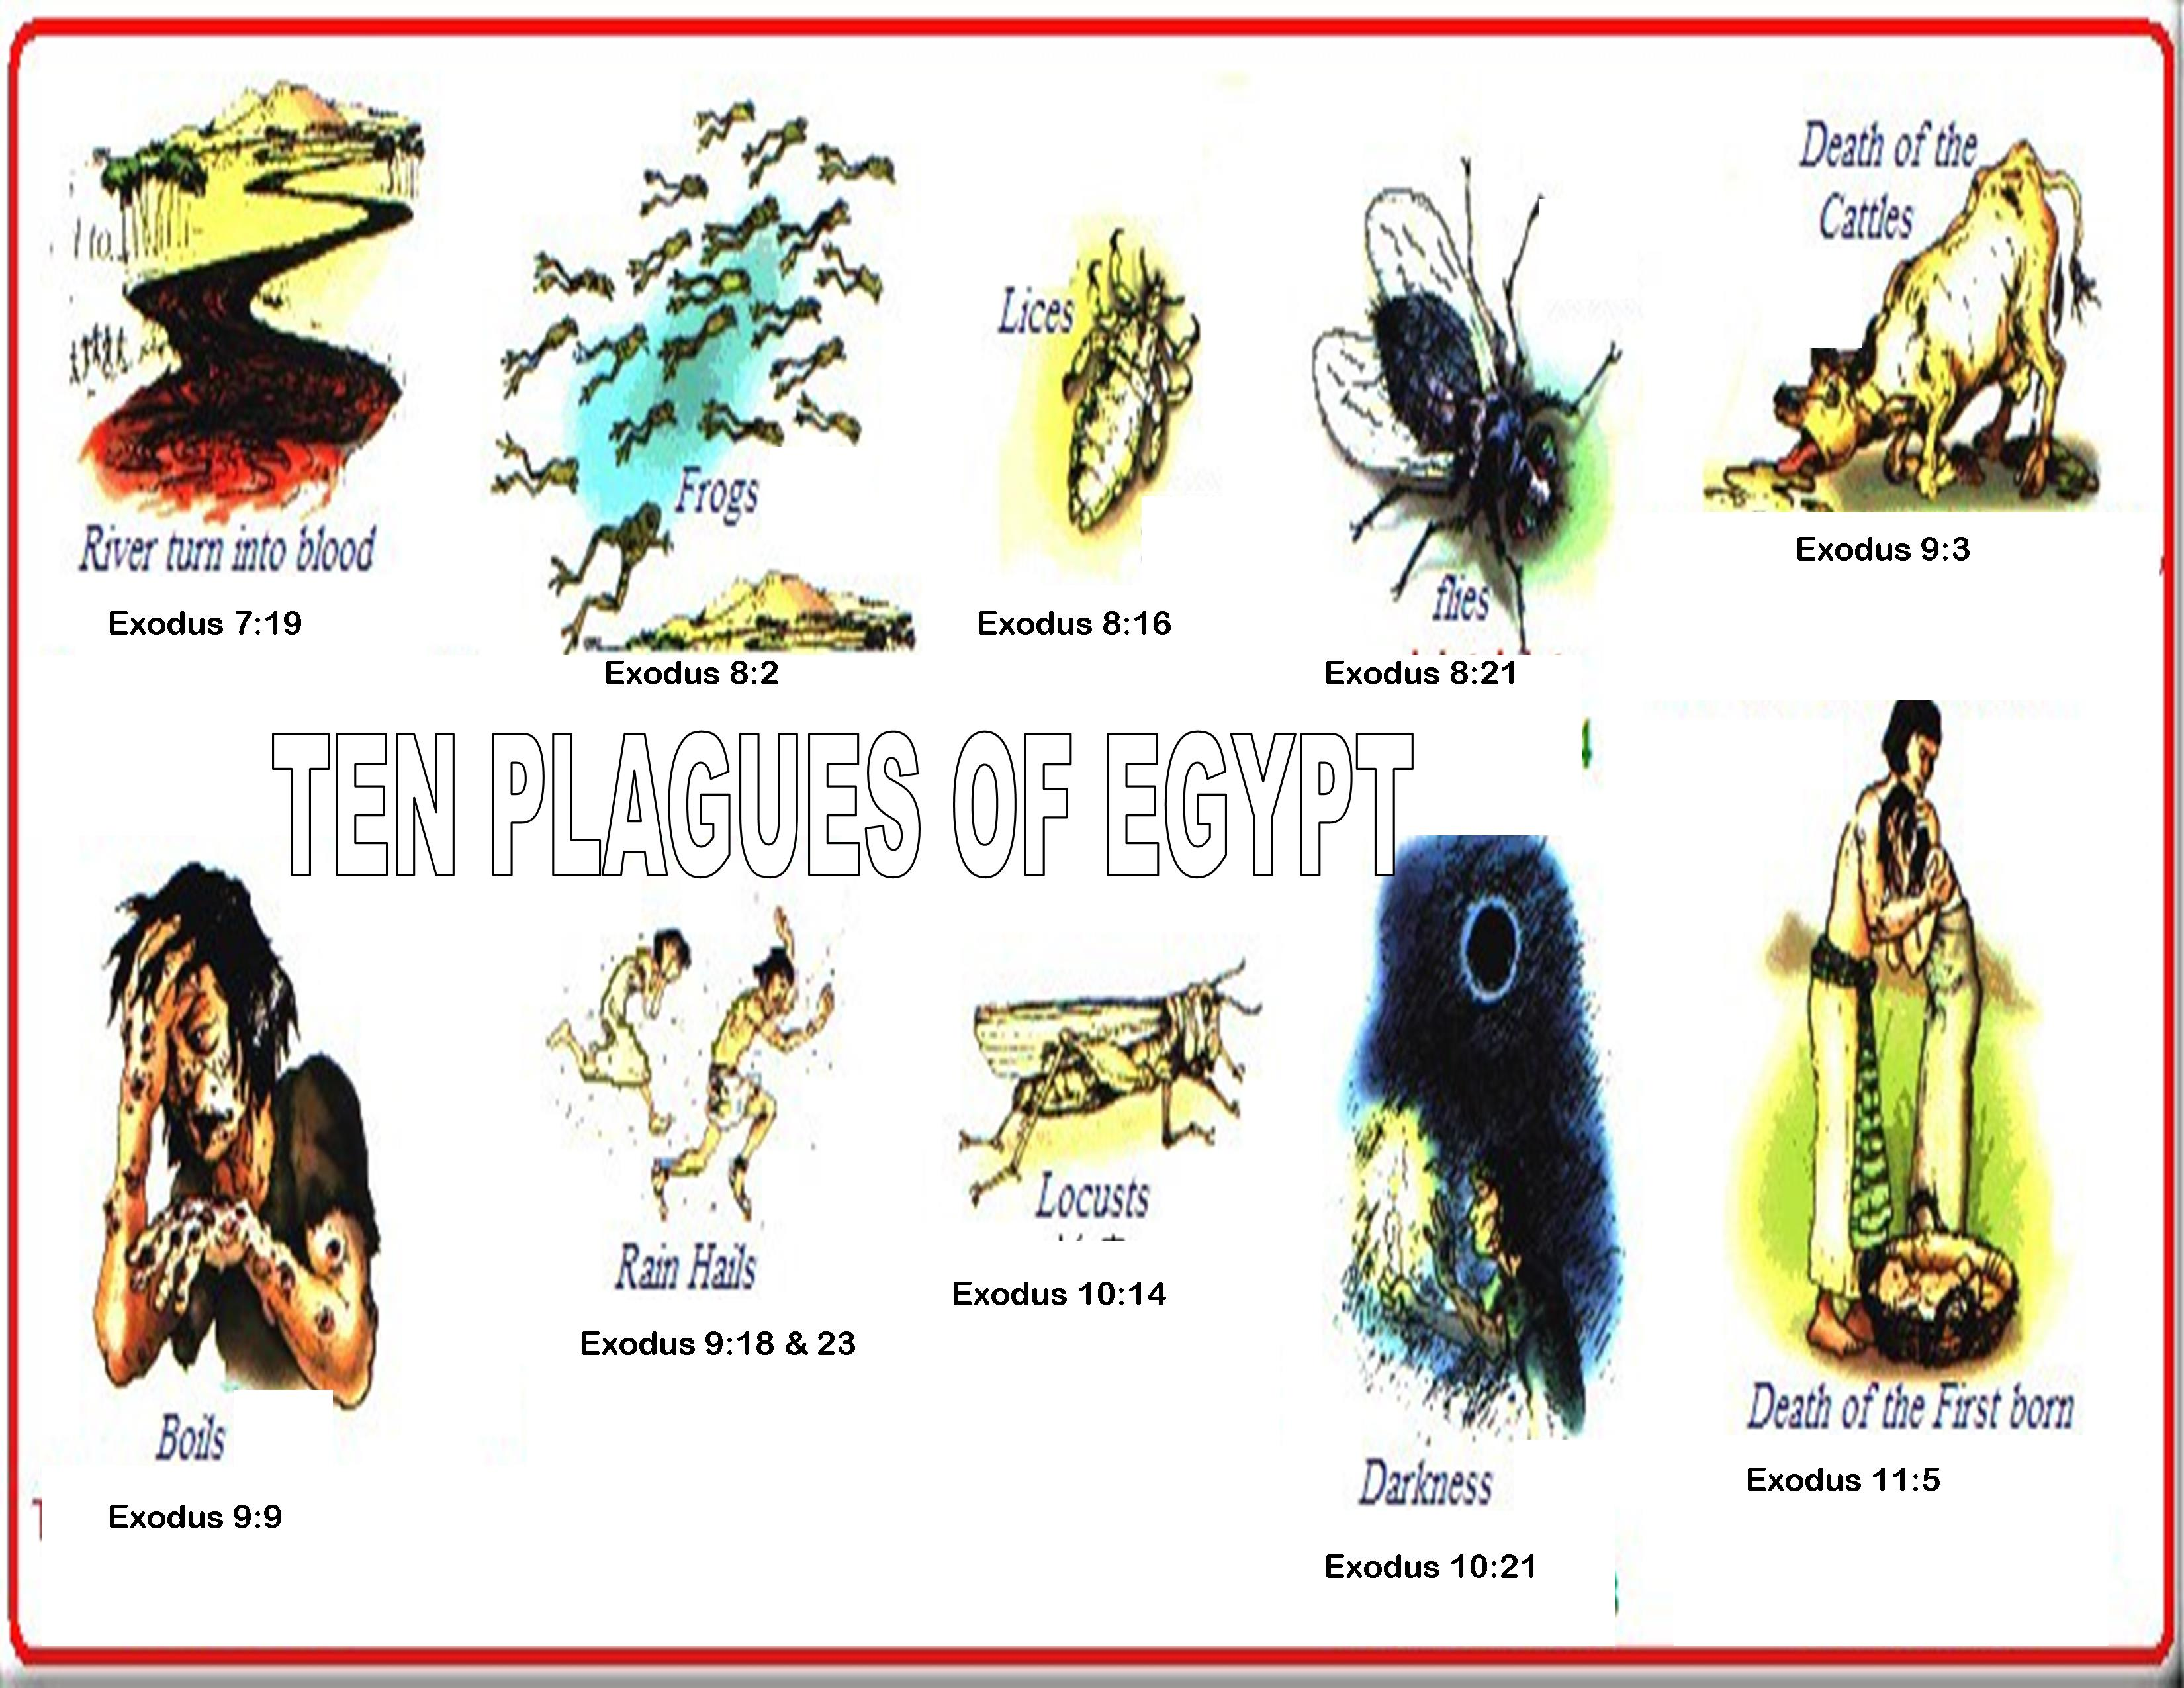 the ten plagues The ten plagues are ten sequential disasters god inflicted on egypt through moses and aaron, according to the biblical book of exodus the plagues generally increased in intensity as they progressed, culminating in the death of firstborn children in the 10th plague.